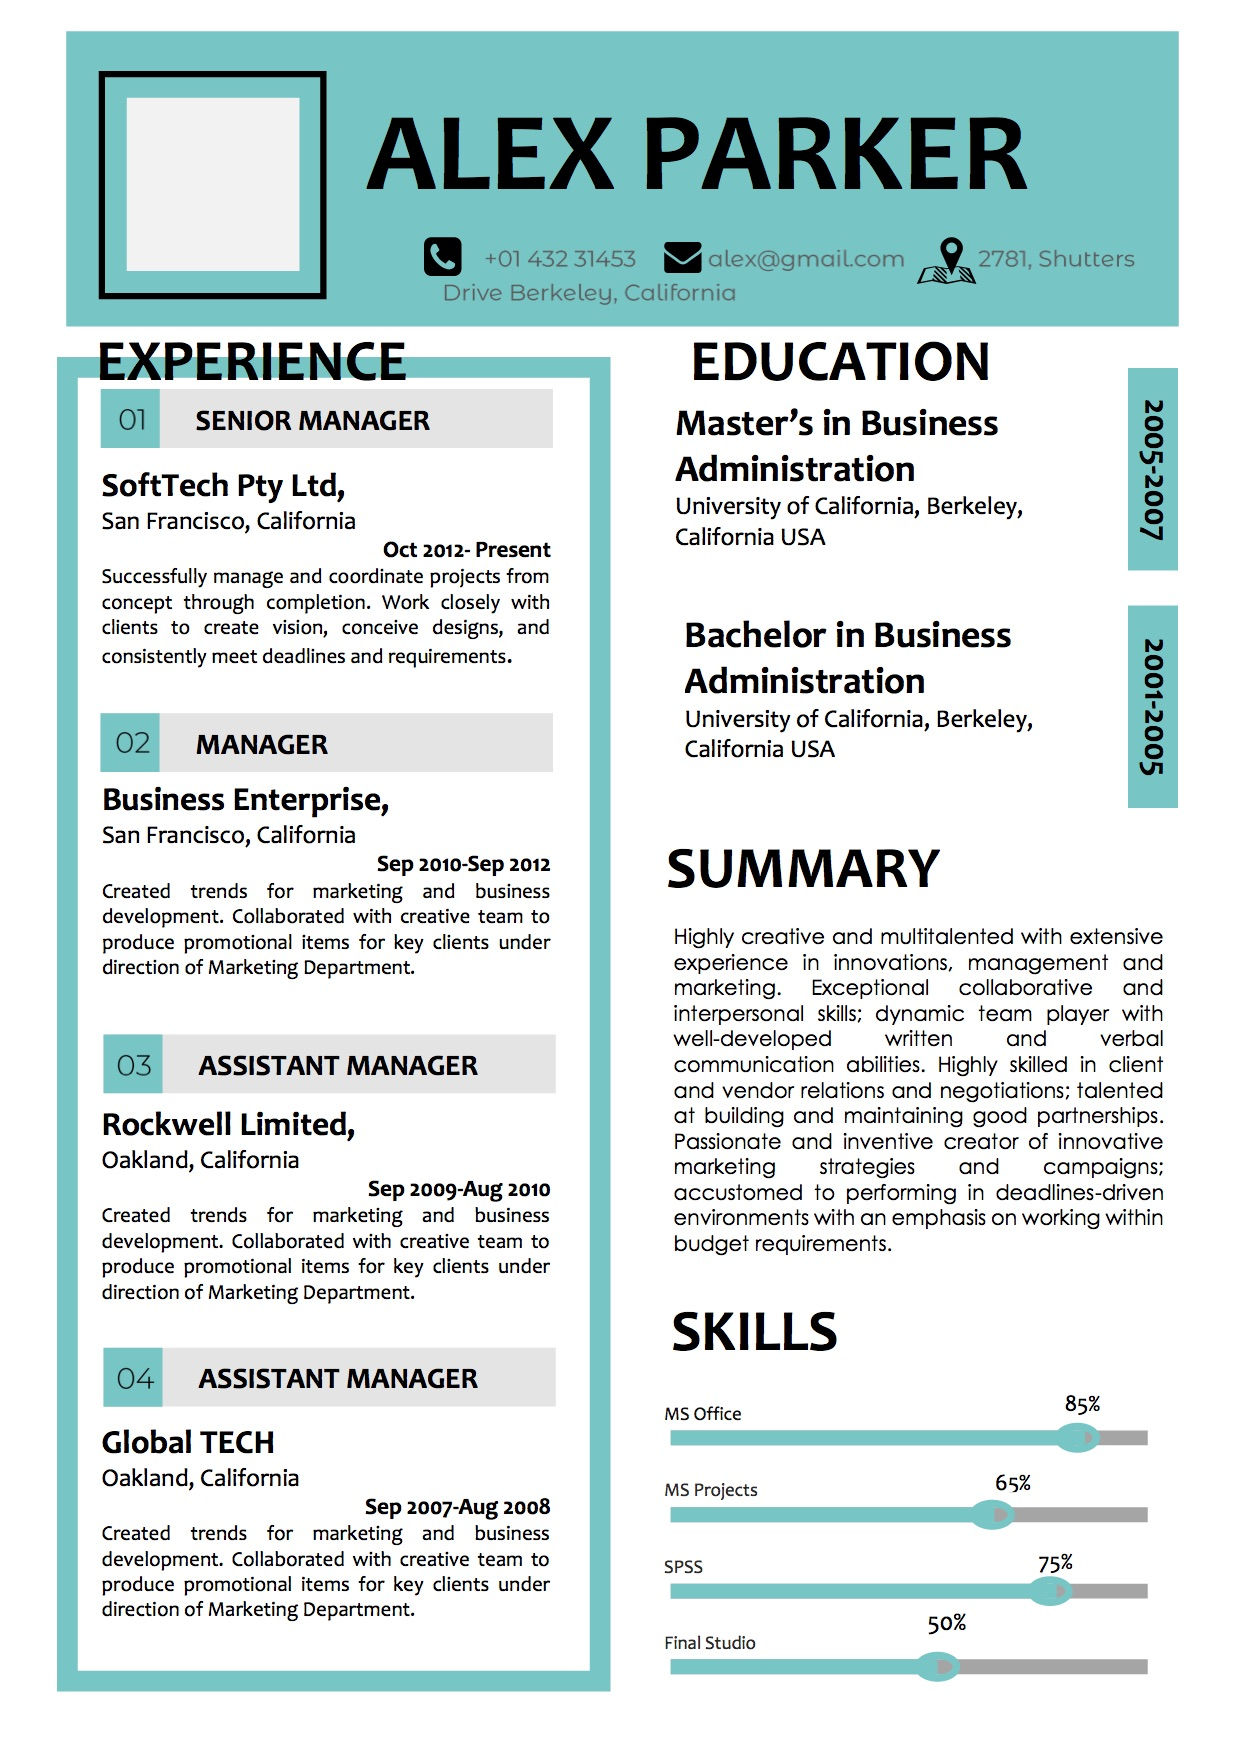 Corporate Resume Curriculum Vitae Design Template Vista Resume